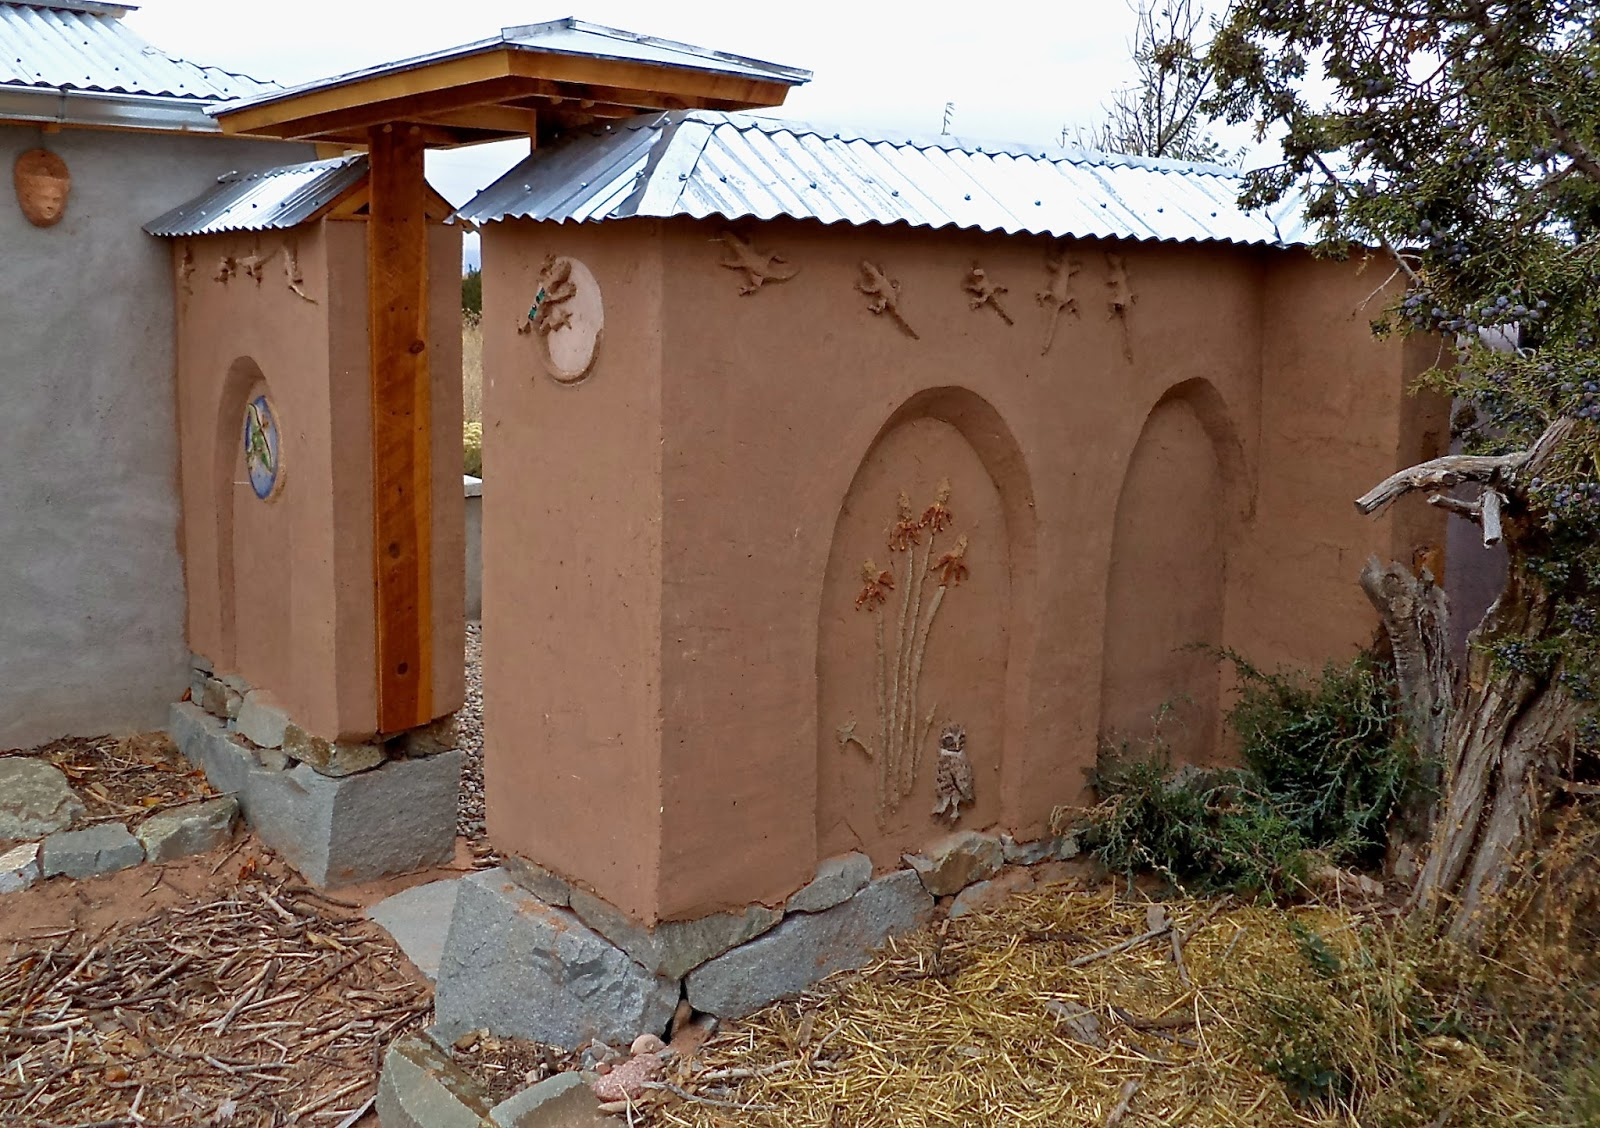 Alt build blog building an adobe wall 1 stone foundation - How to build an adobe house ...